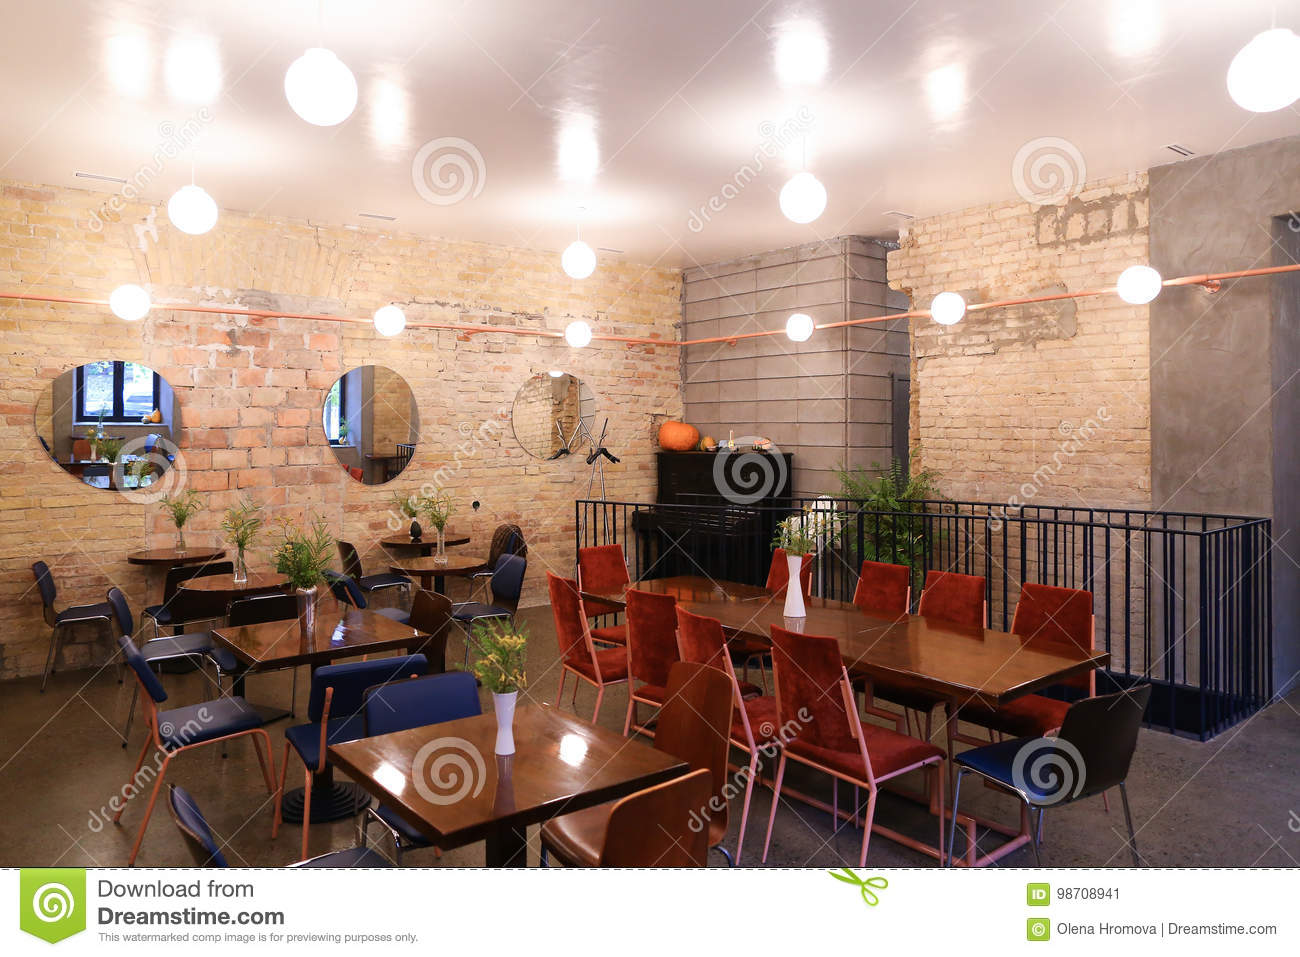 Capture Design Ideas Trendy Cafe Or Restaurant Because Bar Editorial Photo Image Of Beautiful Glass 98708941